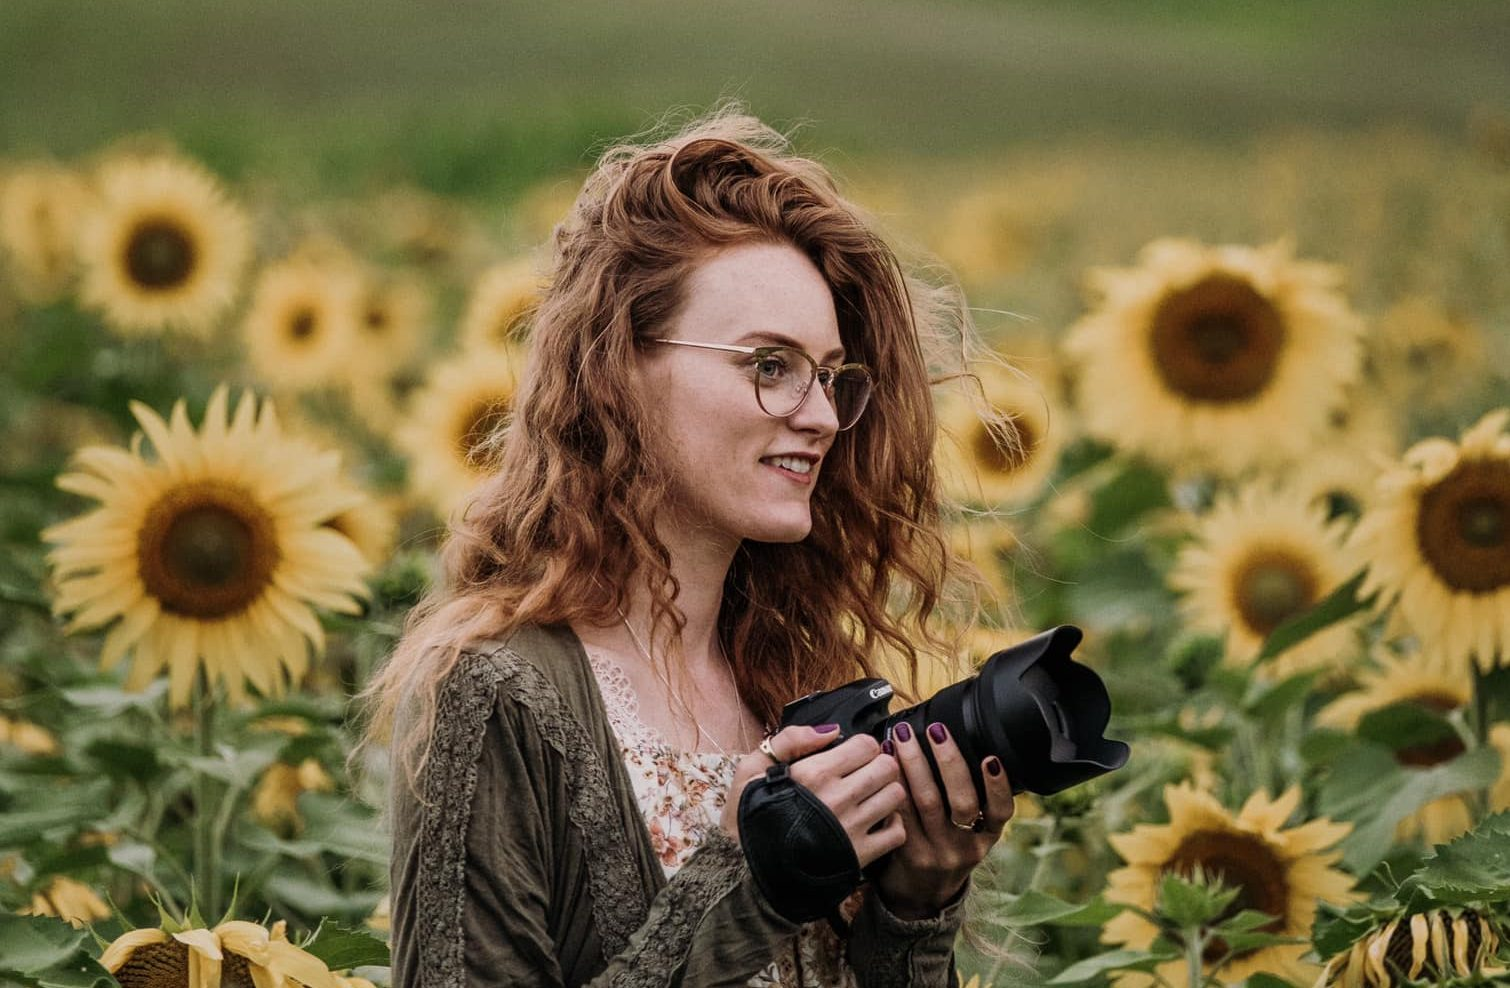 photographer with camera in a sunflower field